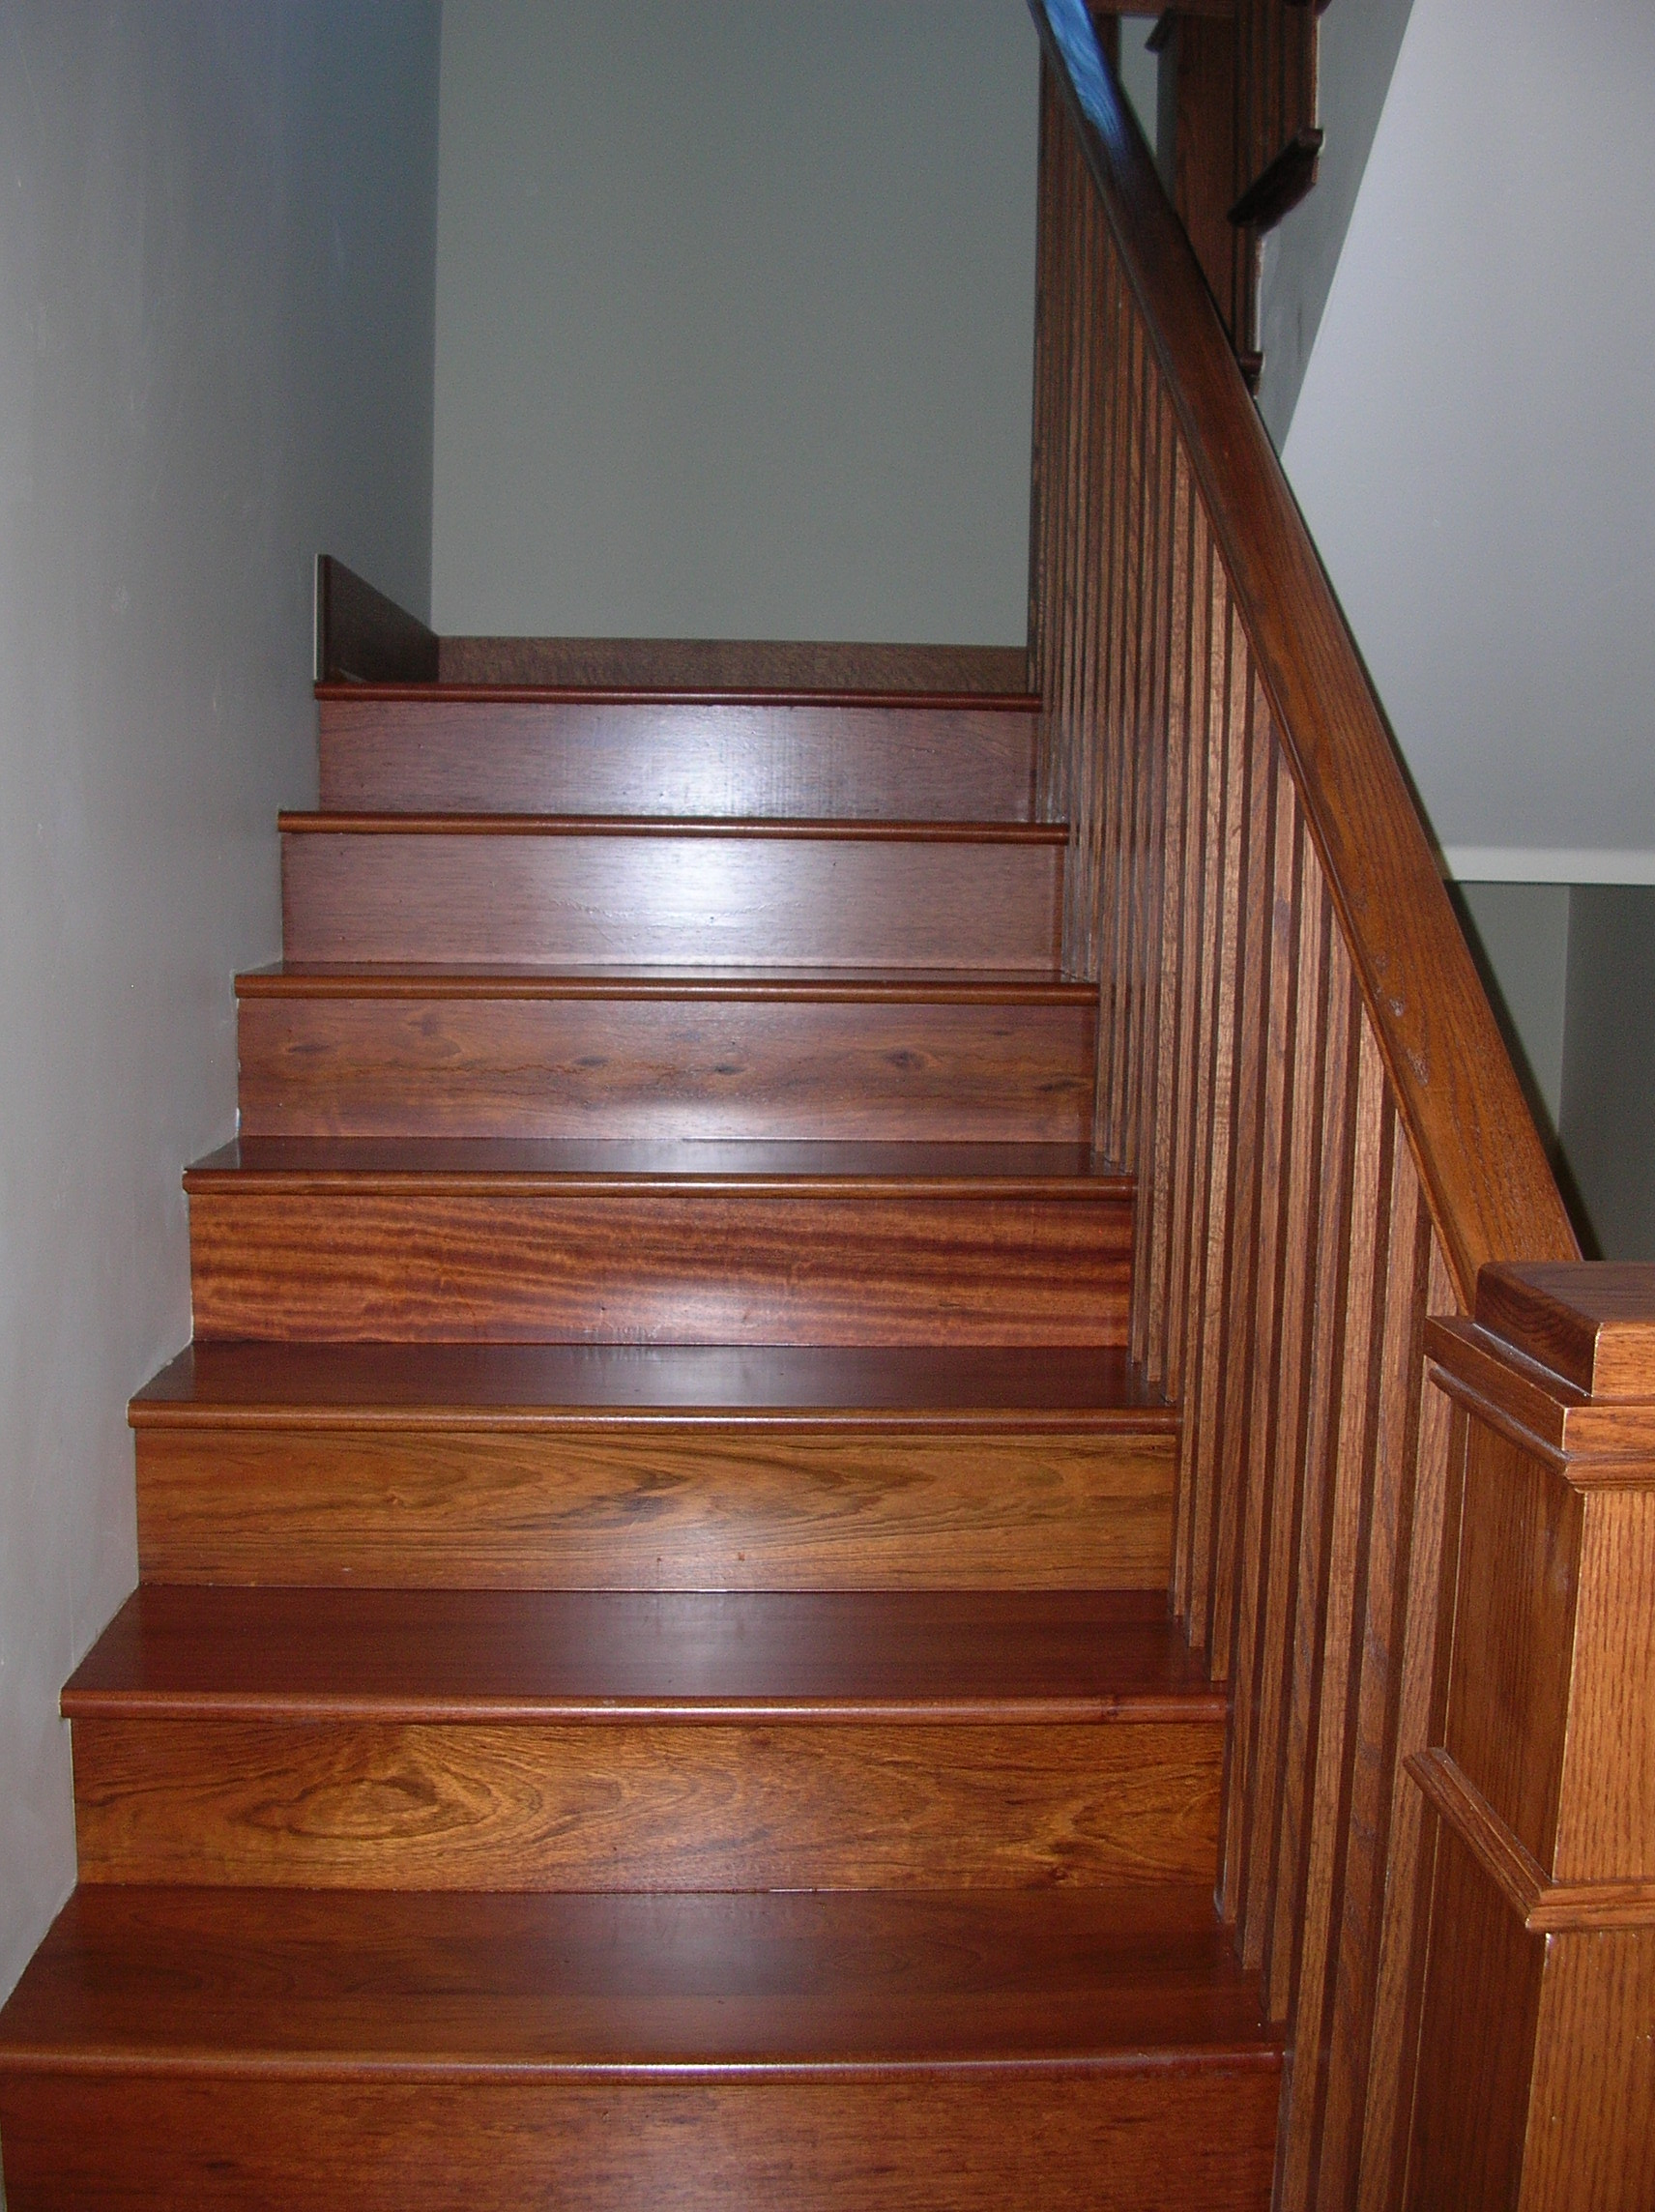 Kendall S Custom Wood Floors And Steps Inc Home